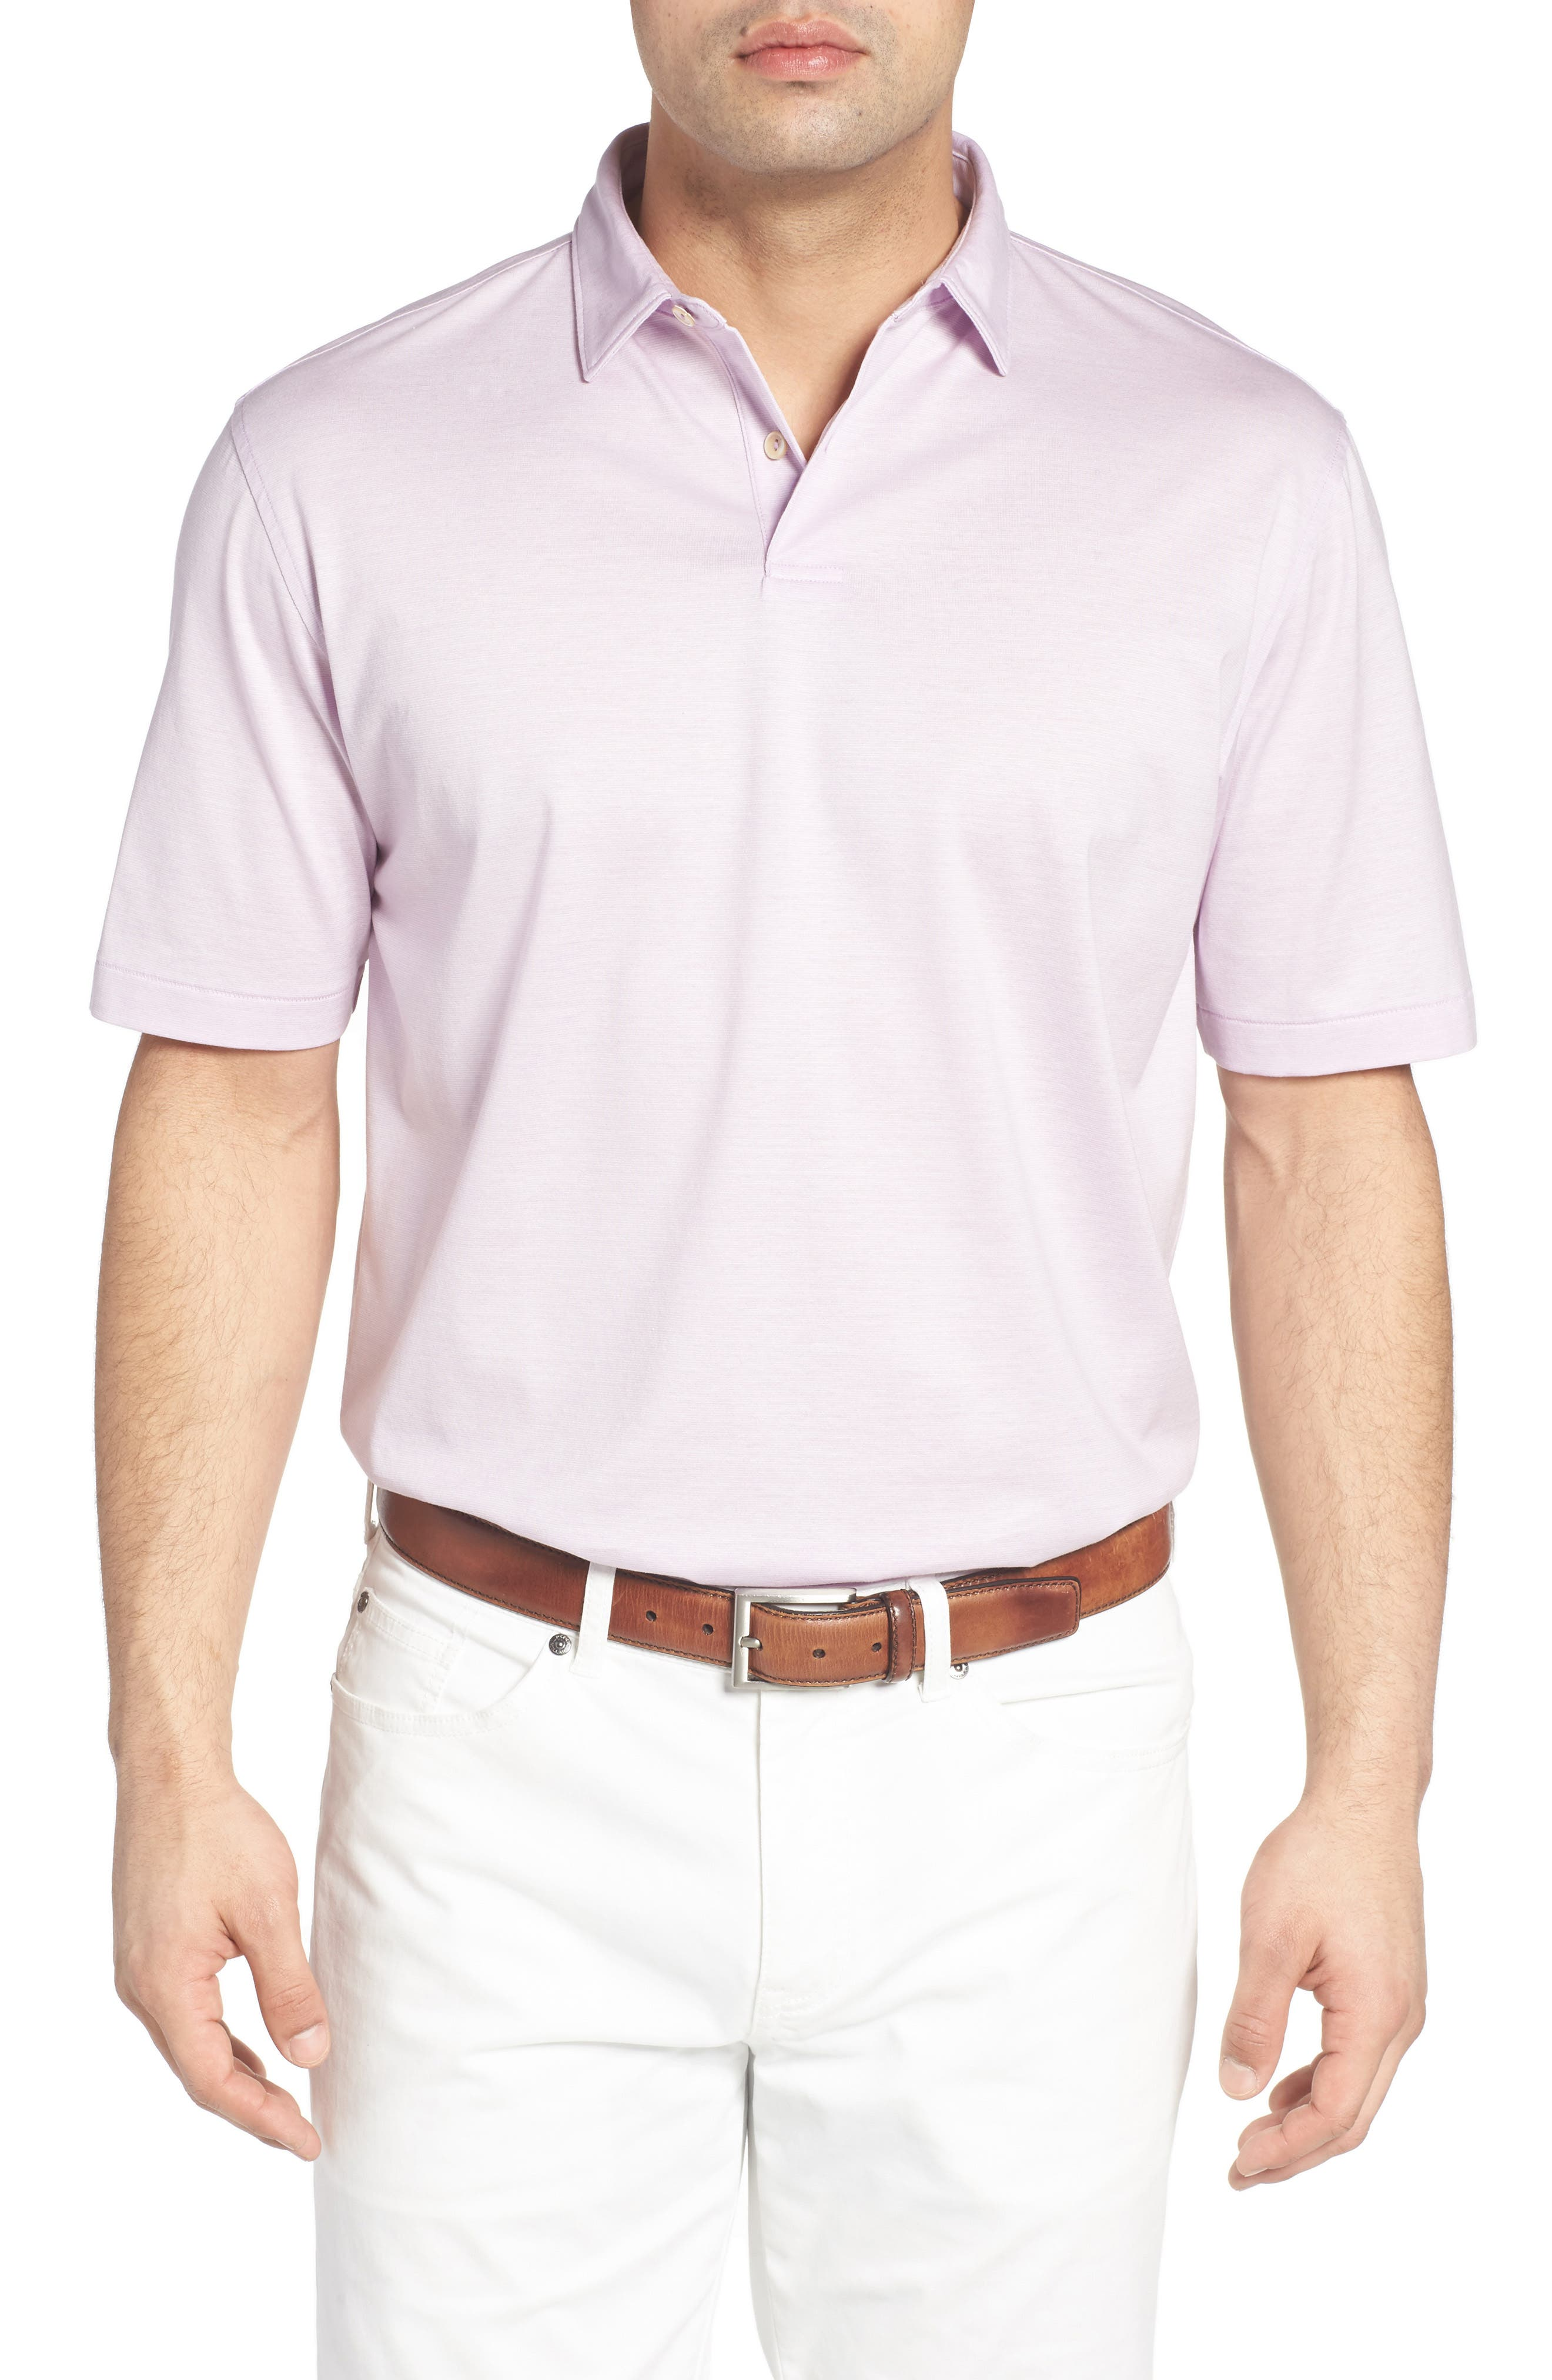 Peter Millar Nanoluxe Golf Polo